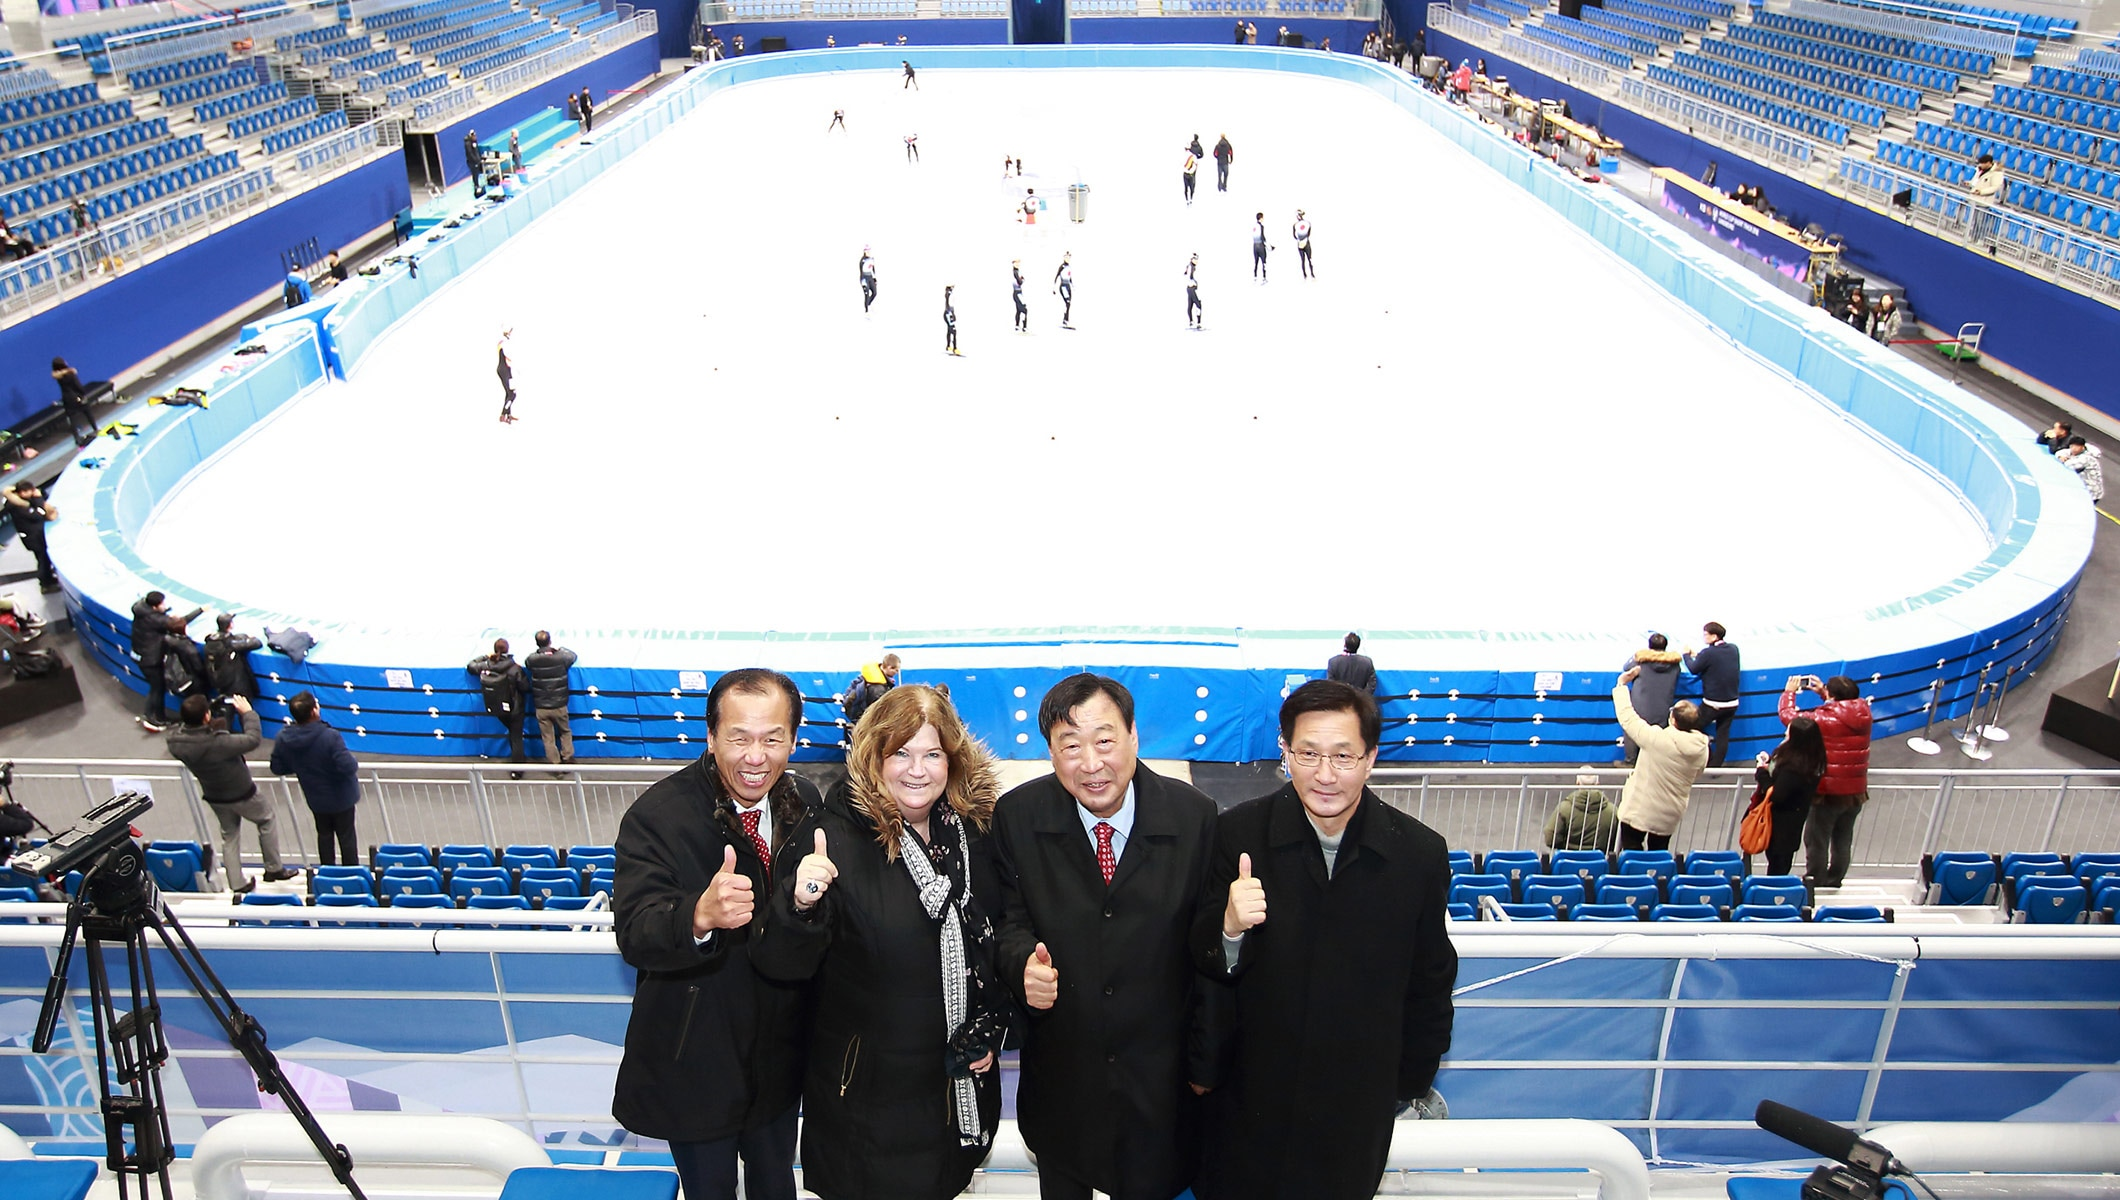 First ice sport Olympic venue for PyeongChang 2018 completed